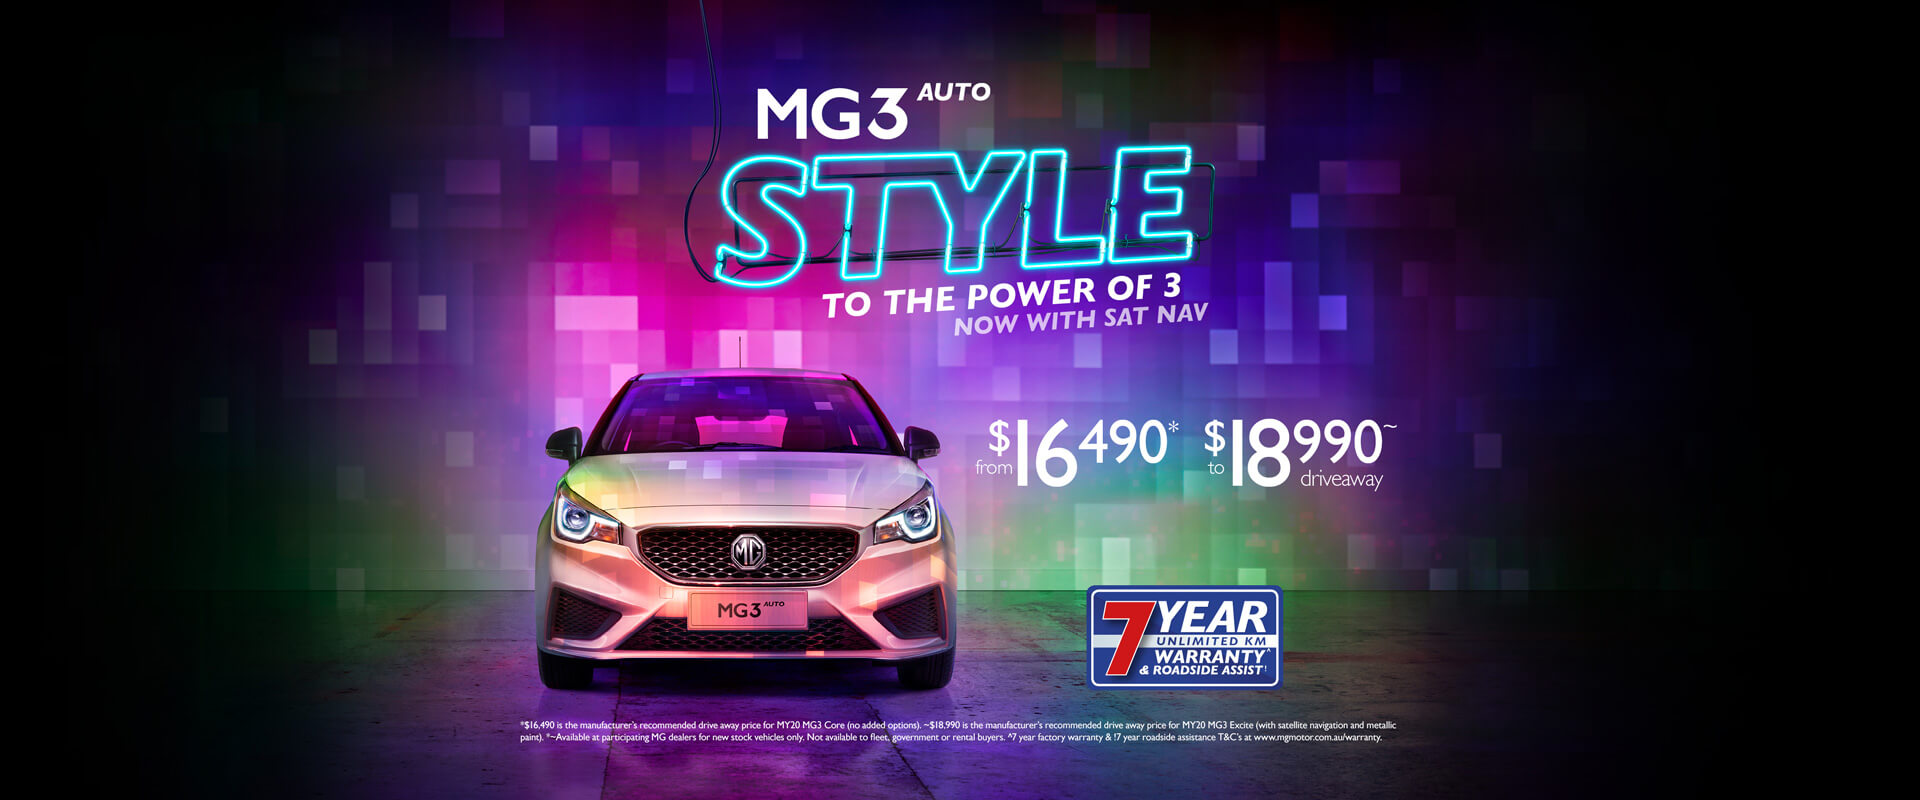 MG3 Auto Style to the power of 3 now with sat nav